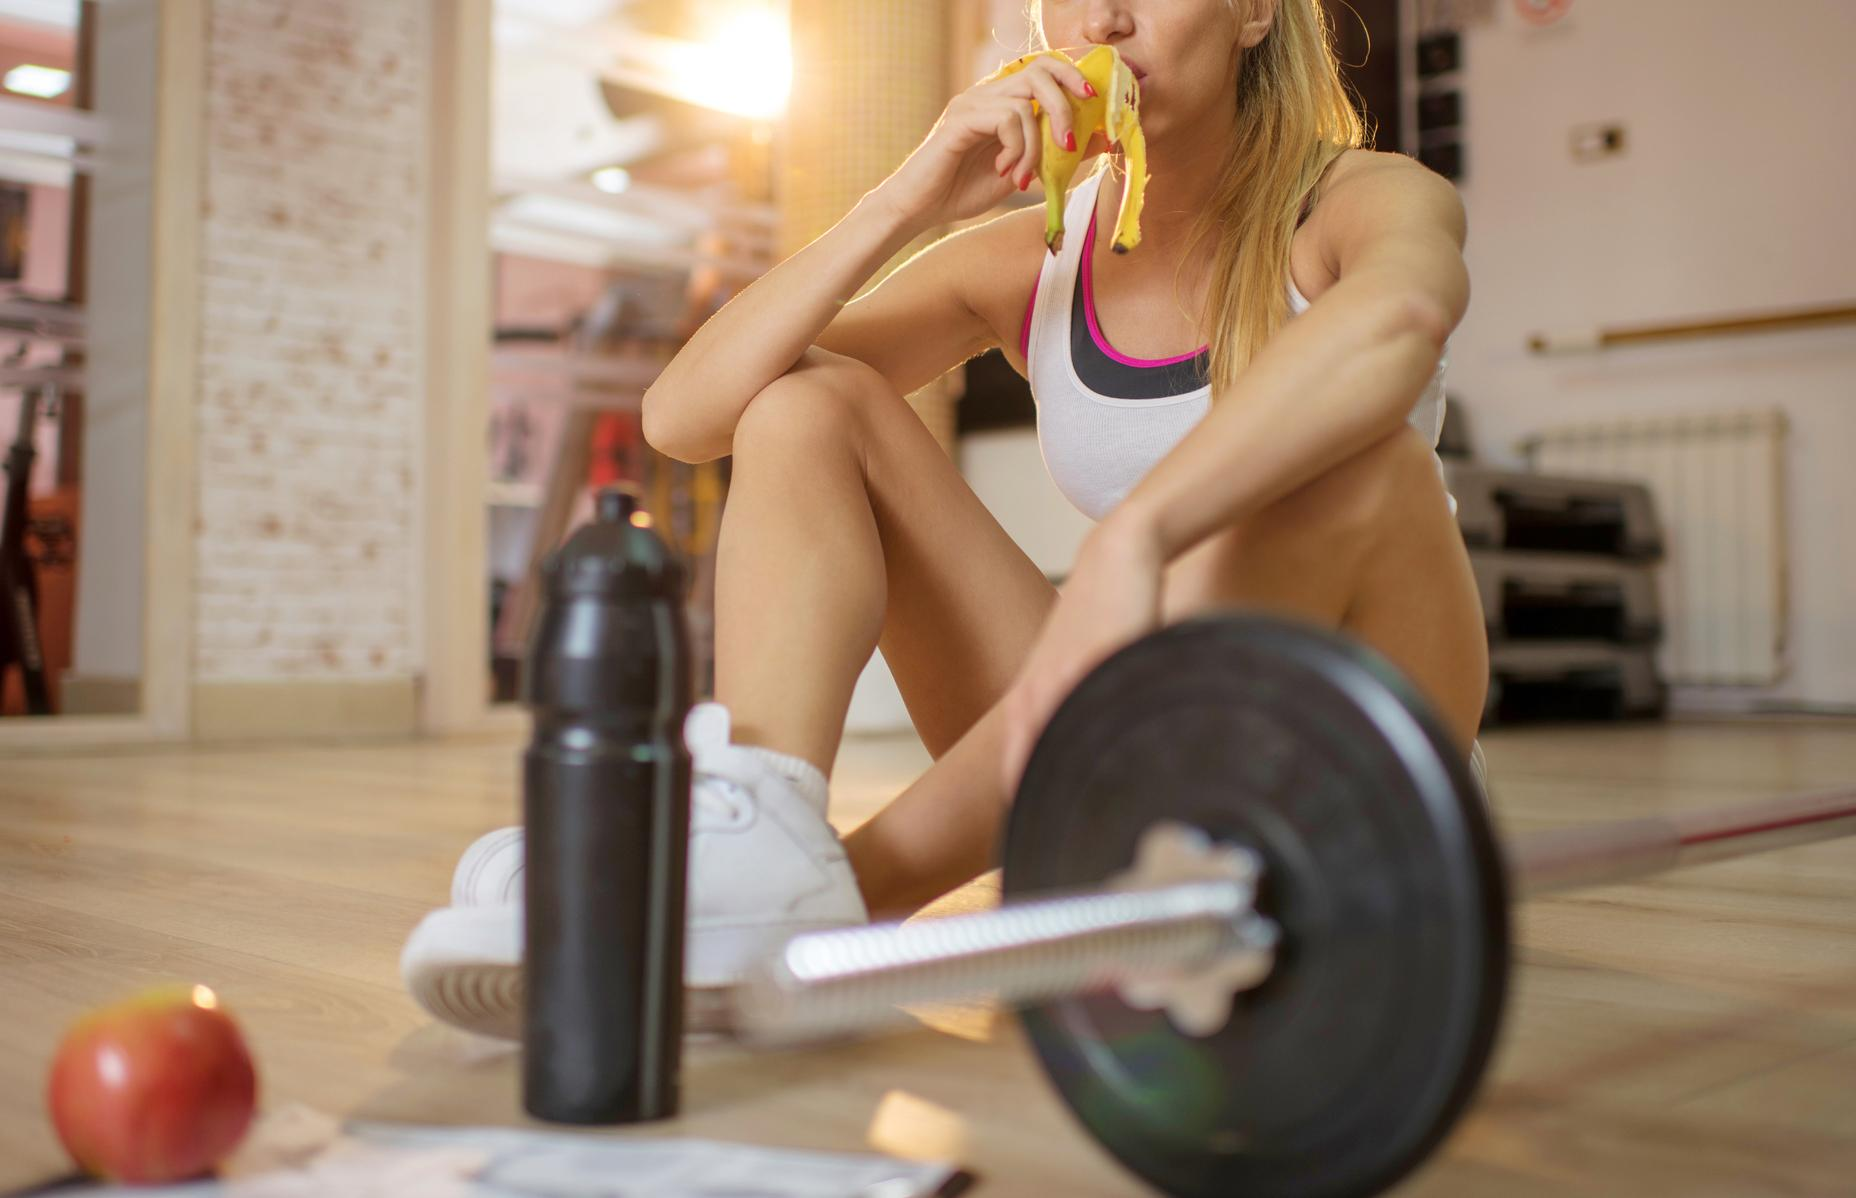 What to eat after working out, according to a top Harley Street nutritionist